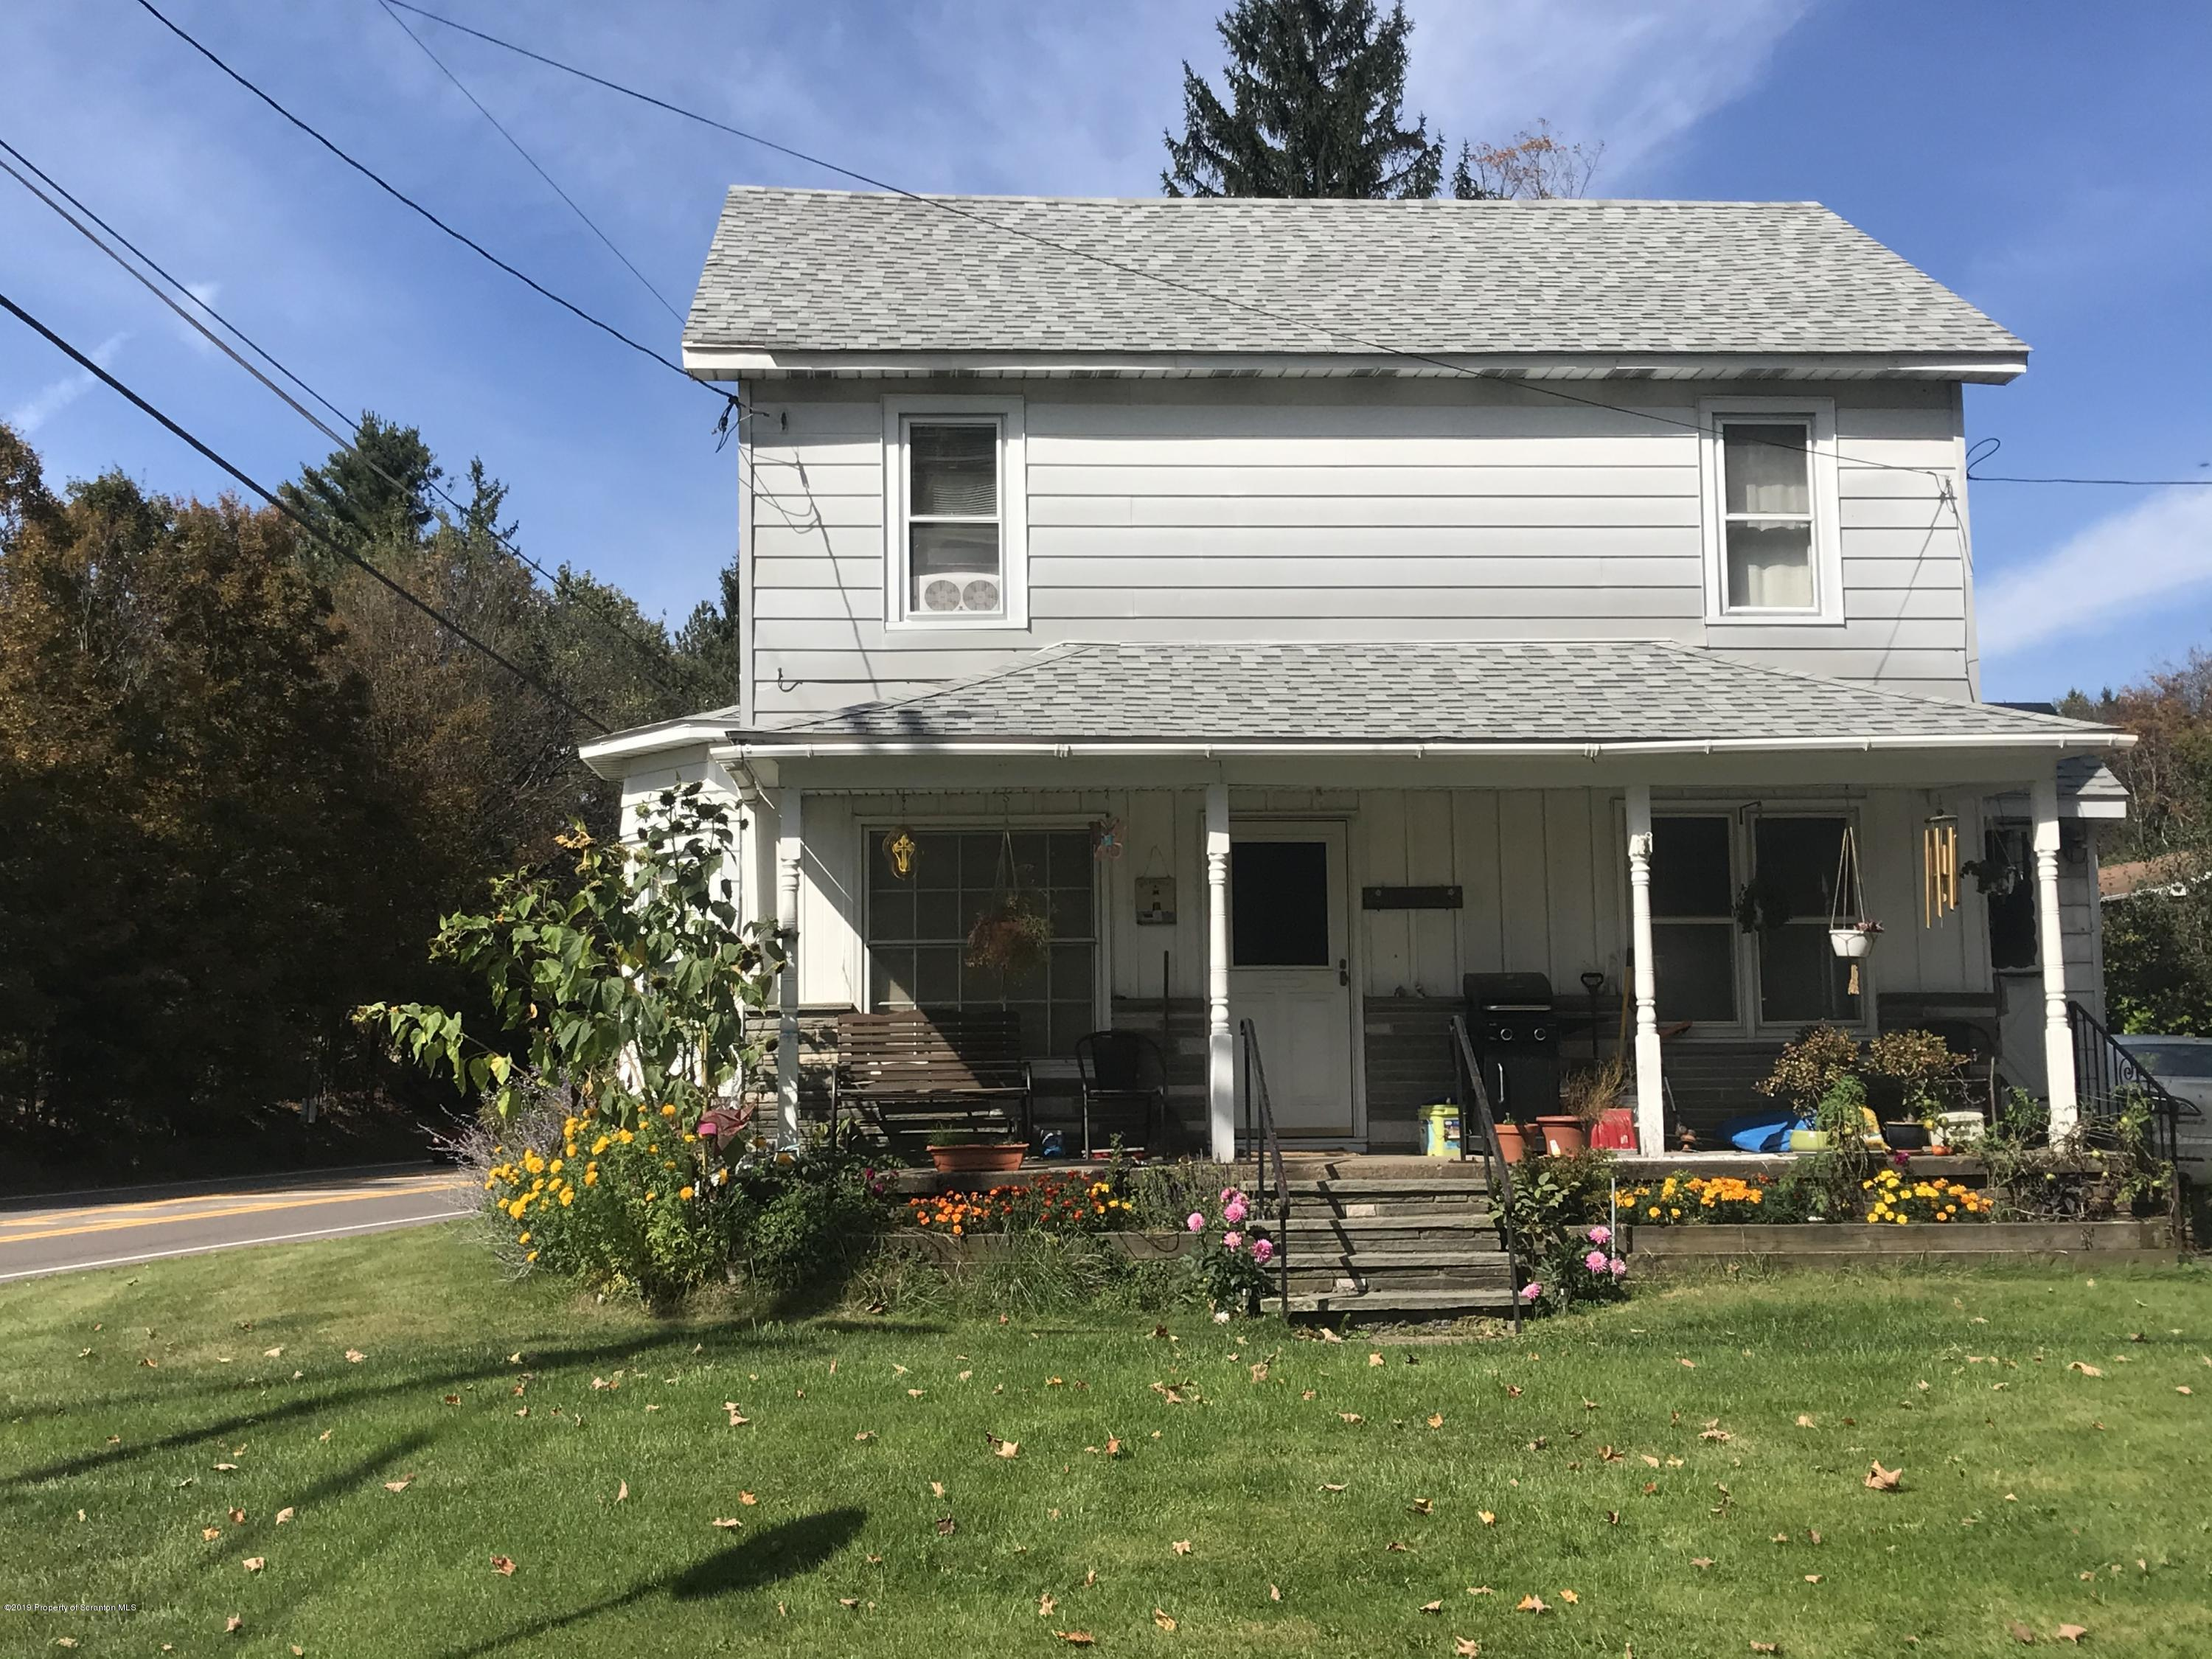 19 Church ST, Union Dale, Pennsylvania 18470, 3 Bedrooms Bedrooms, 5 Rooms Rooms,2 BathroomsBathrooms,Single Family,For Sale,19 Church ST,19-4698